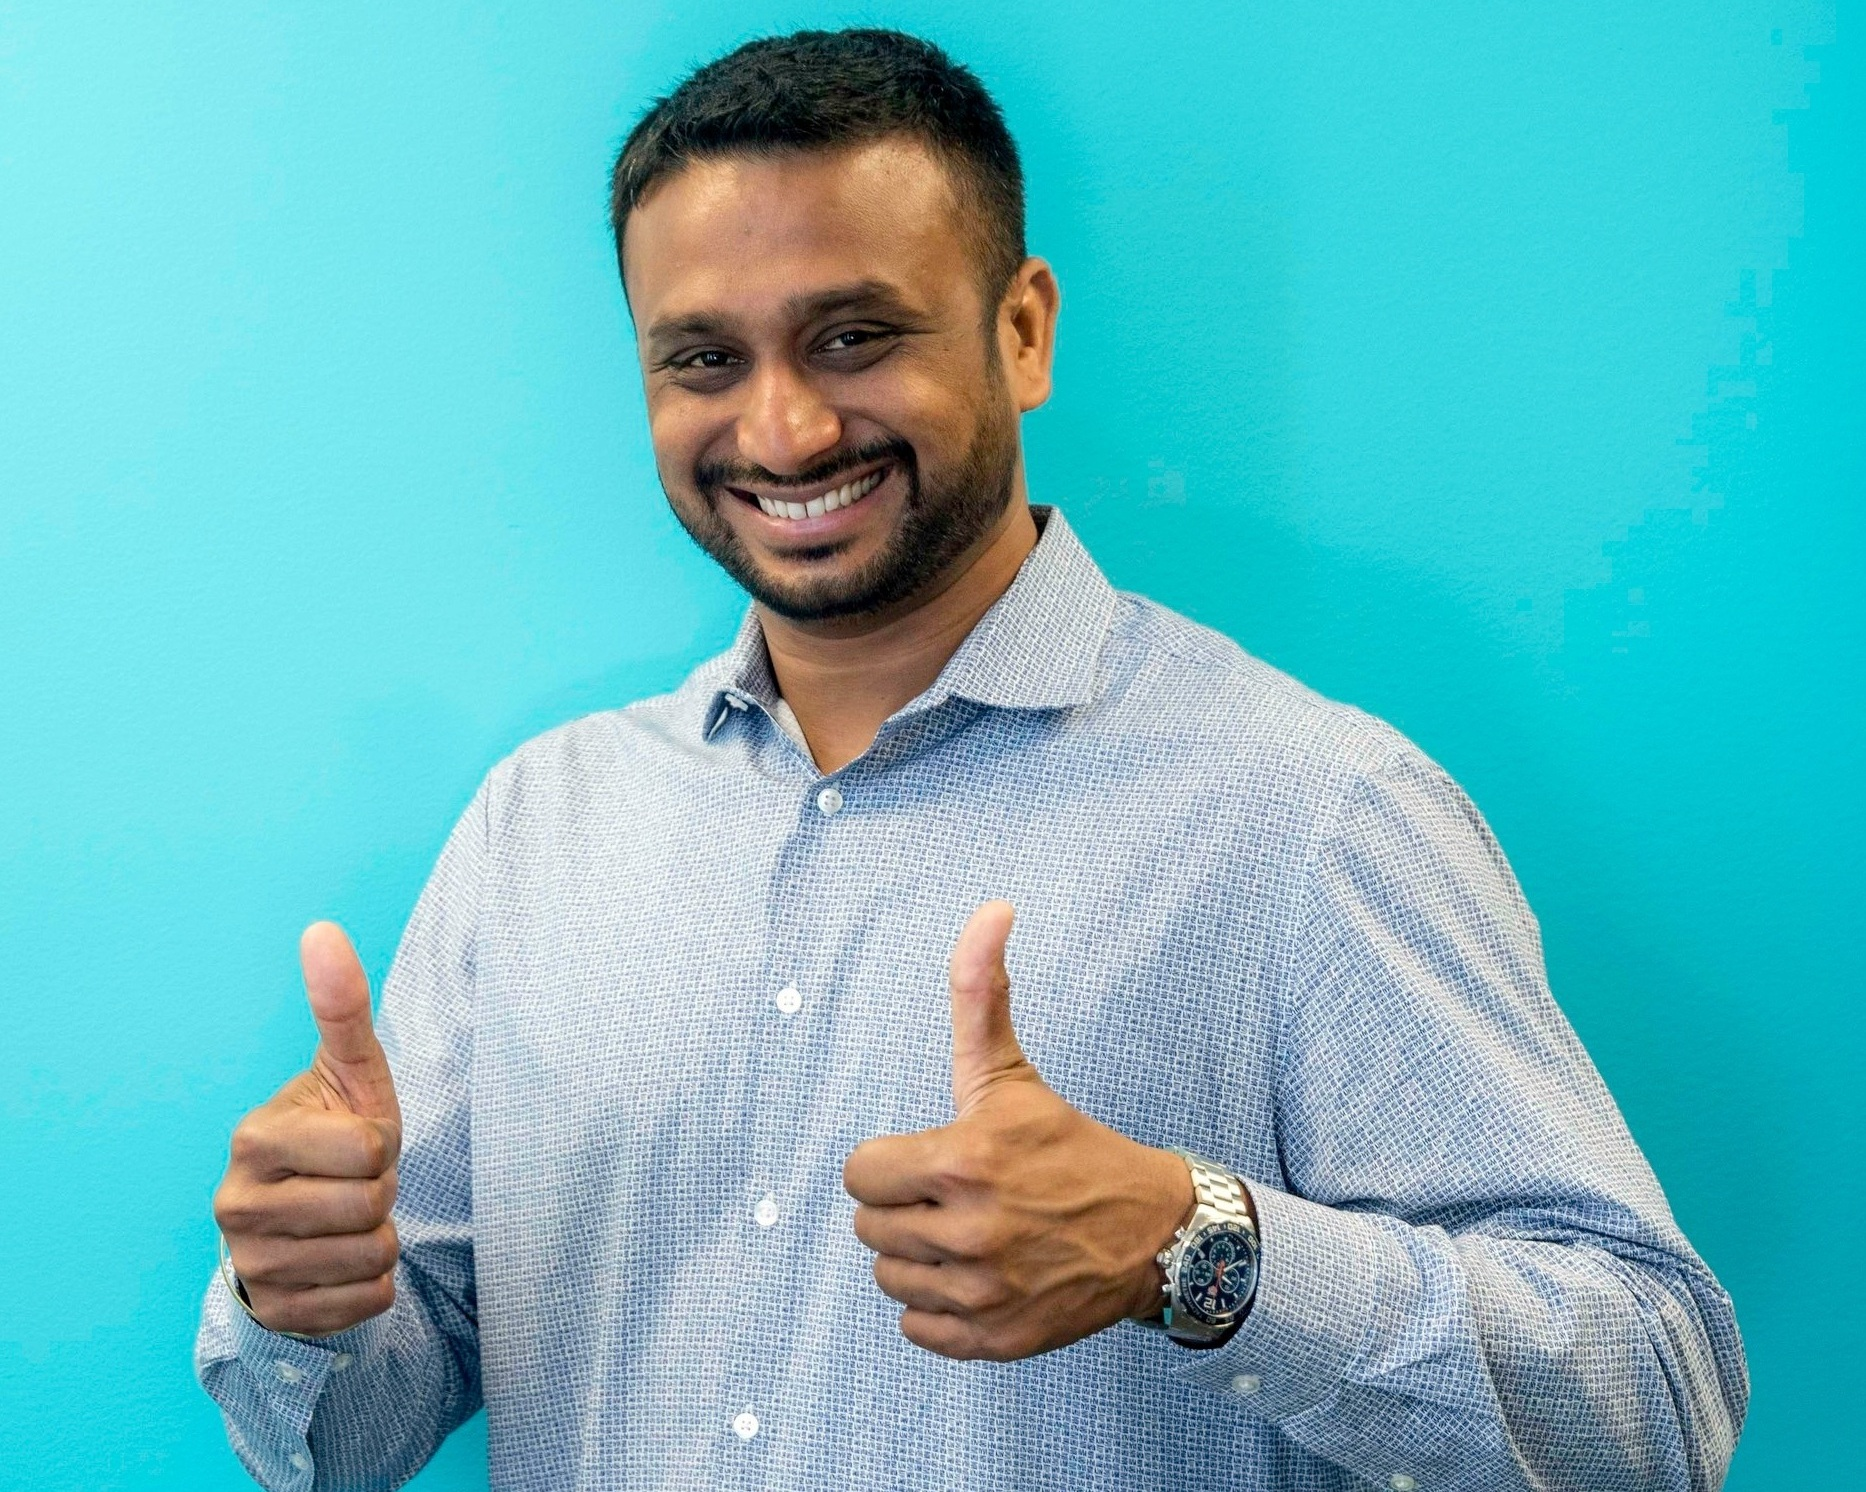 Prem - Prem is a storyteller (no not a liar). He tells stories through the use of performance data. The stories he weaves for our clients have a knack of getting them promoted, and we just LLLOVE when that happens. He's just a thumbs up kind of guy!